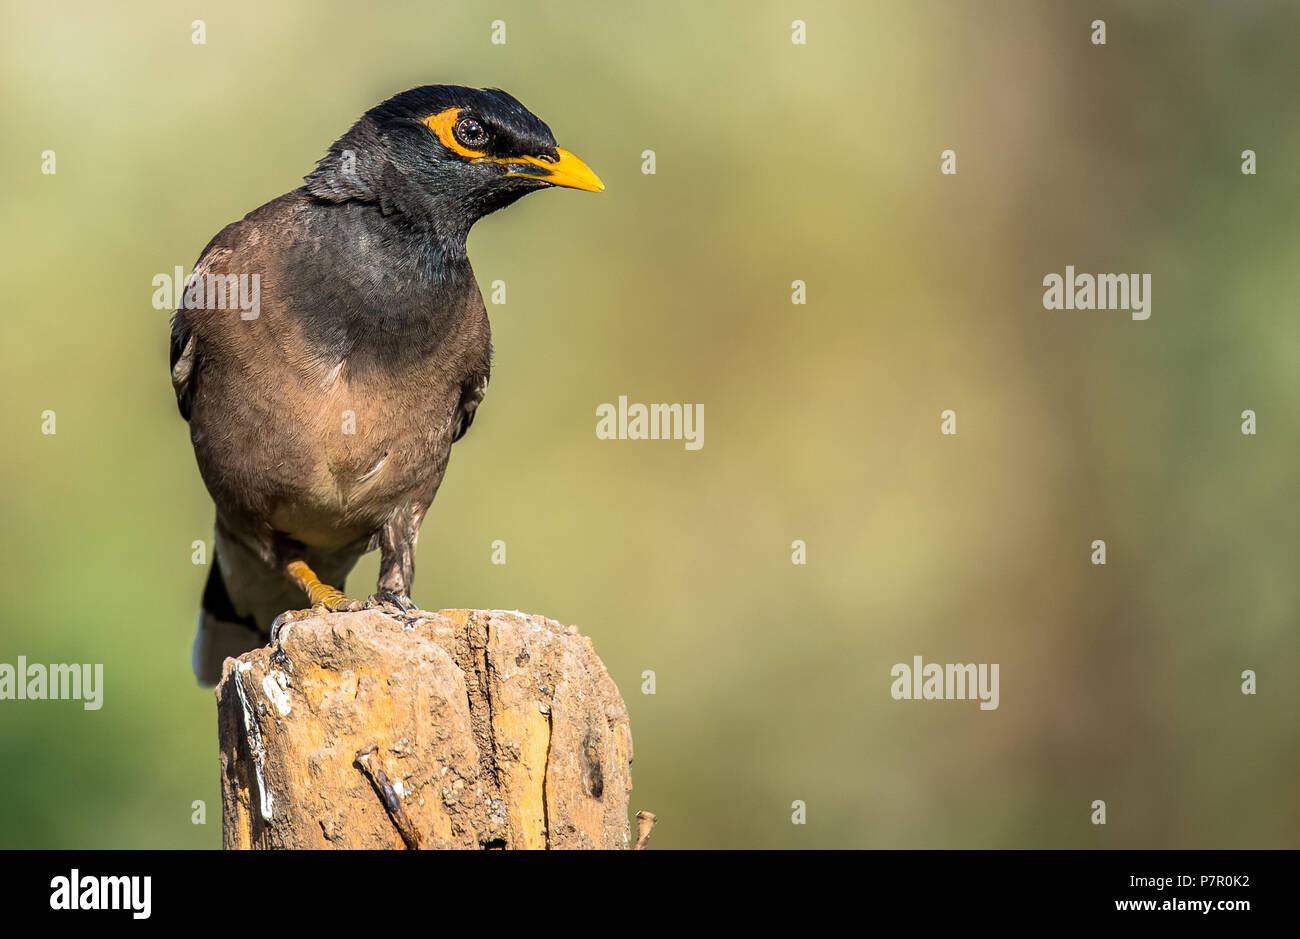 Common Myna in High Detail - Stock Image